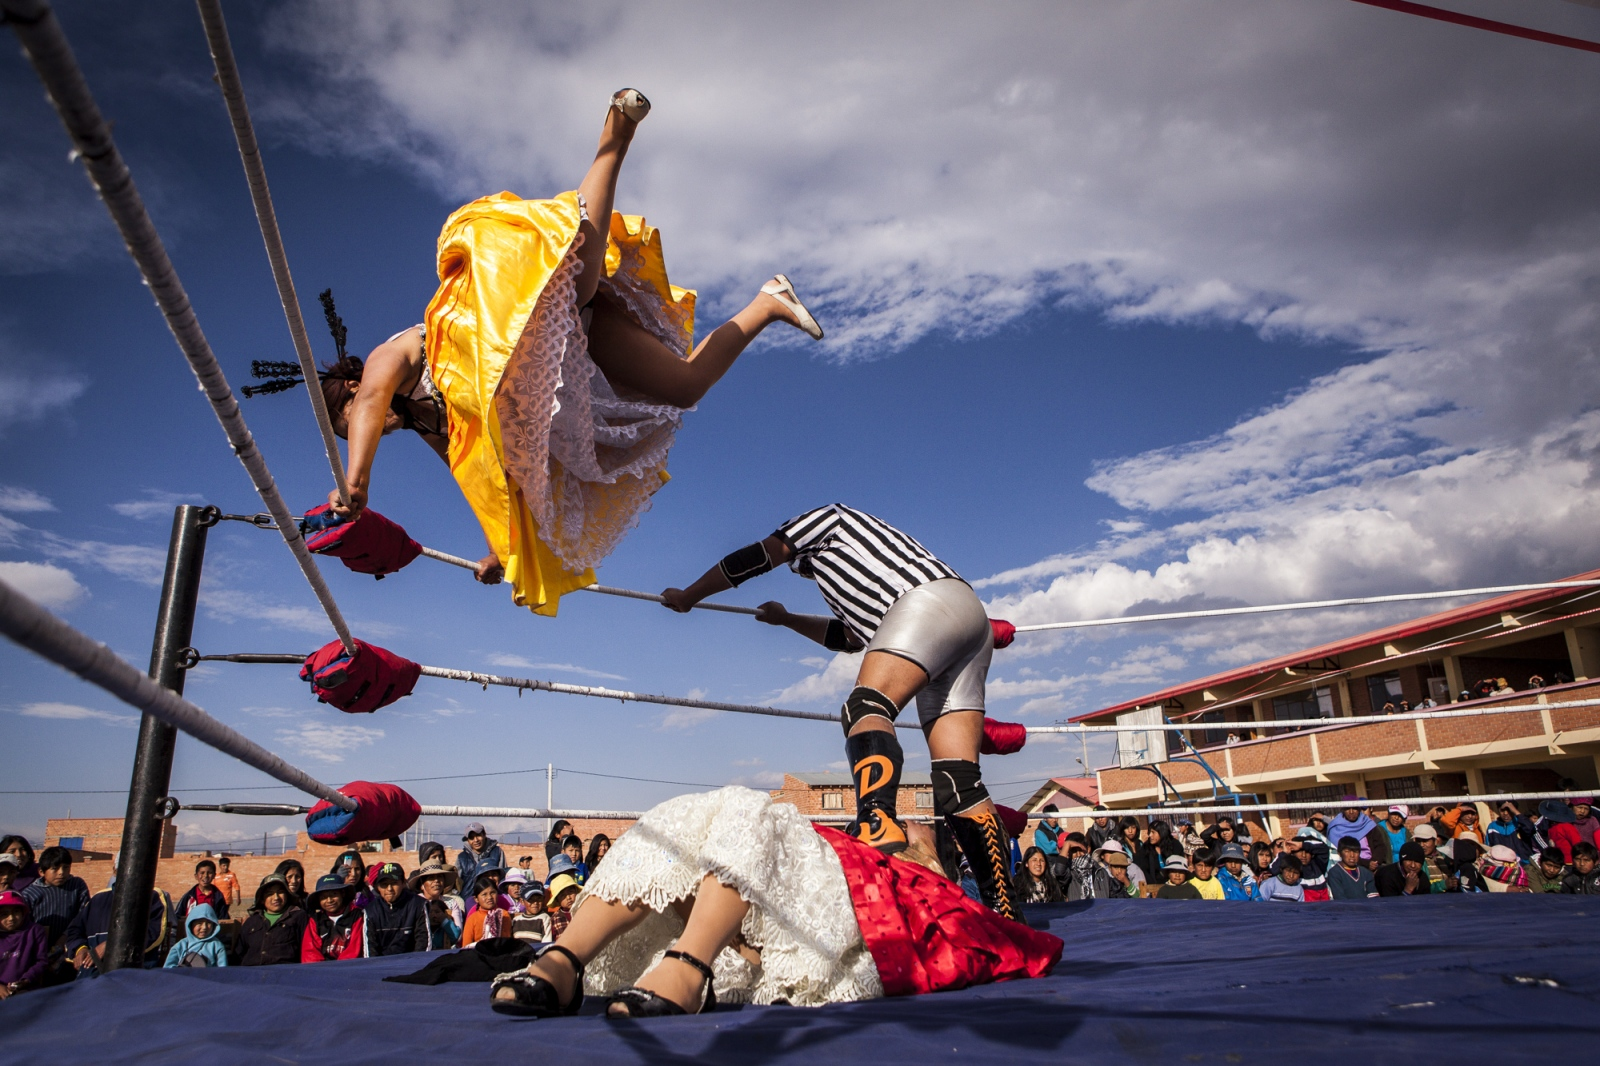 Silvina La Poderosa jumps from a corner of the ring to land in her opponent, Reyna Torres, during exhibit fight in Senkata, El Alto.